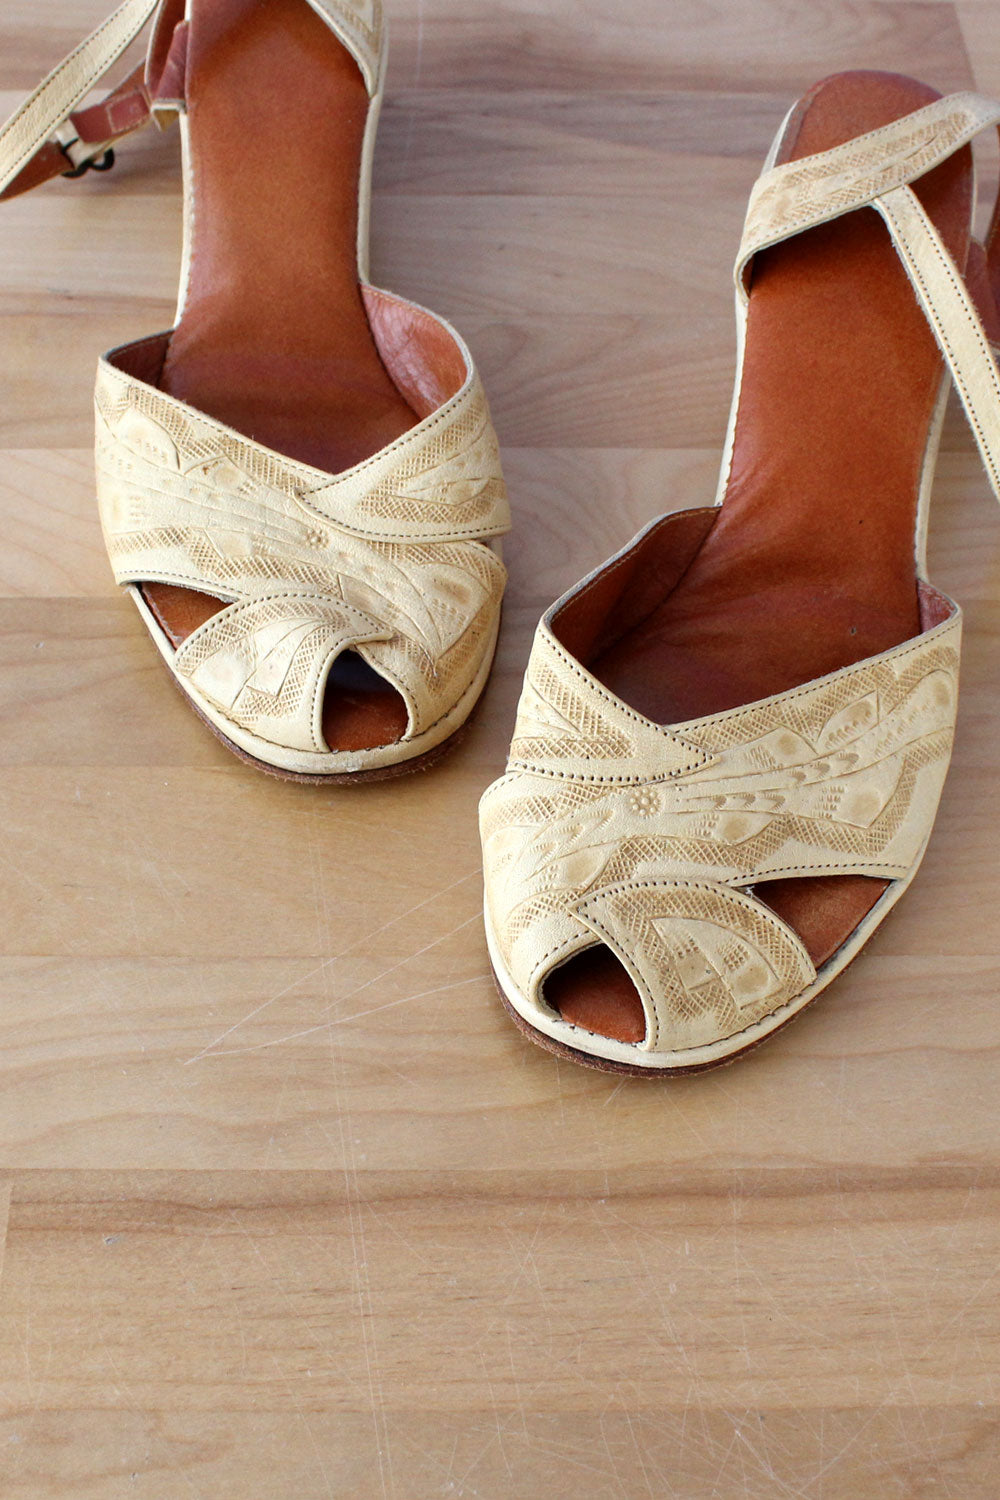 Tooled Peeptoe Wedge Sandals 6.5-7